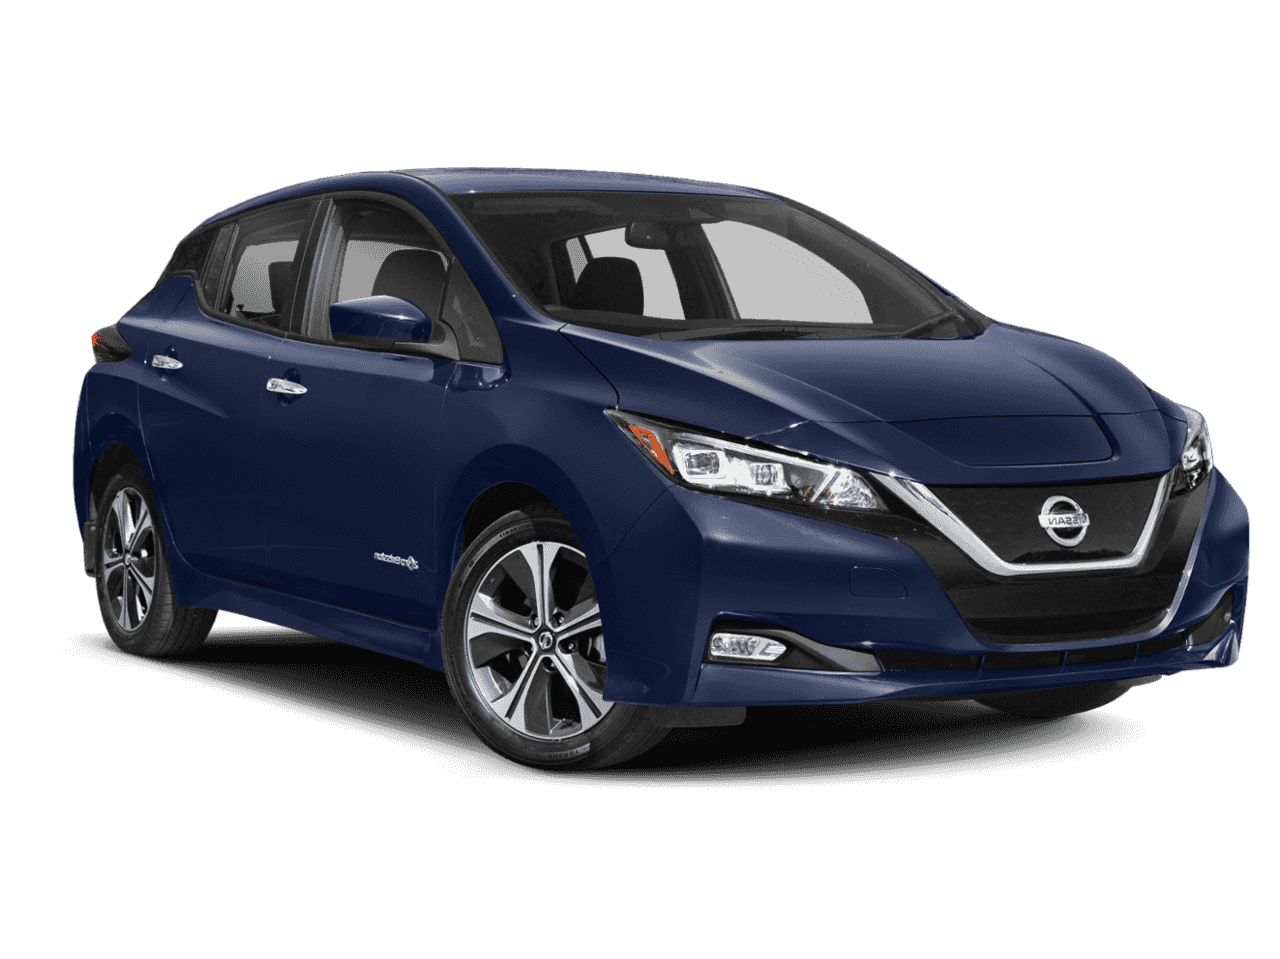 52 New Nissan Electric 2019 Specs and Review by Nissan Electric 2019